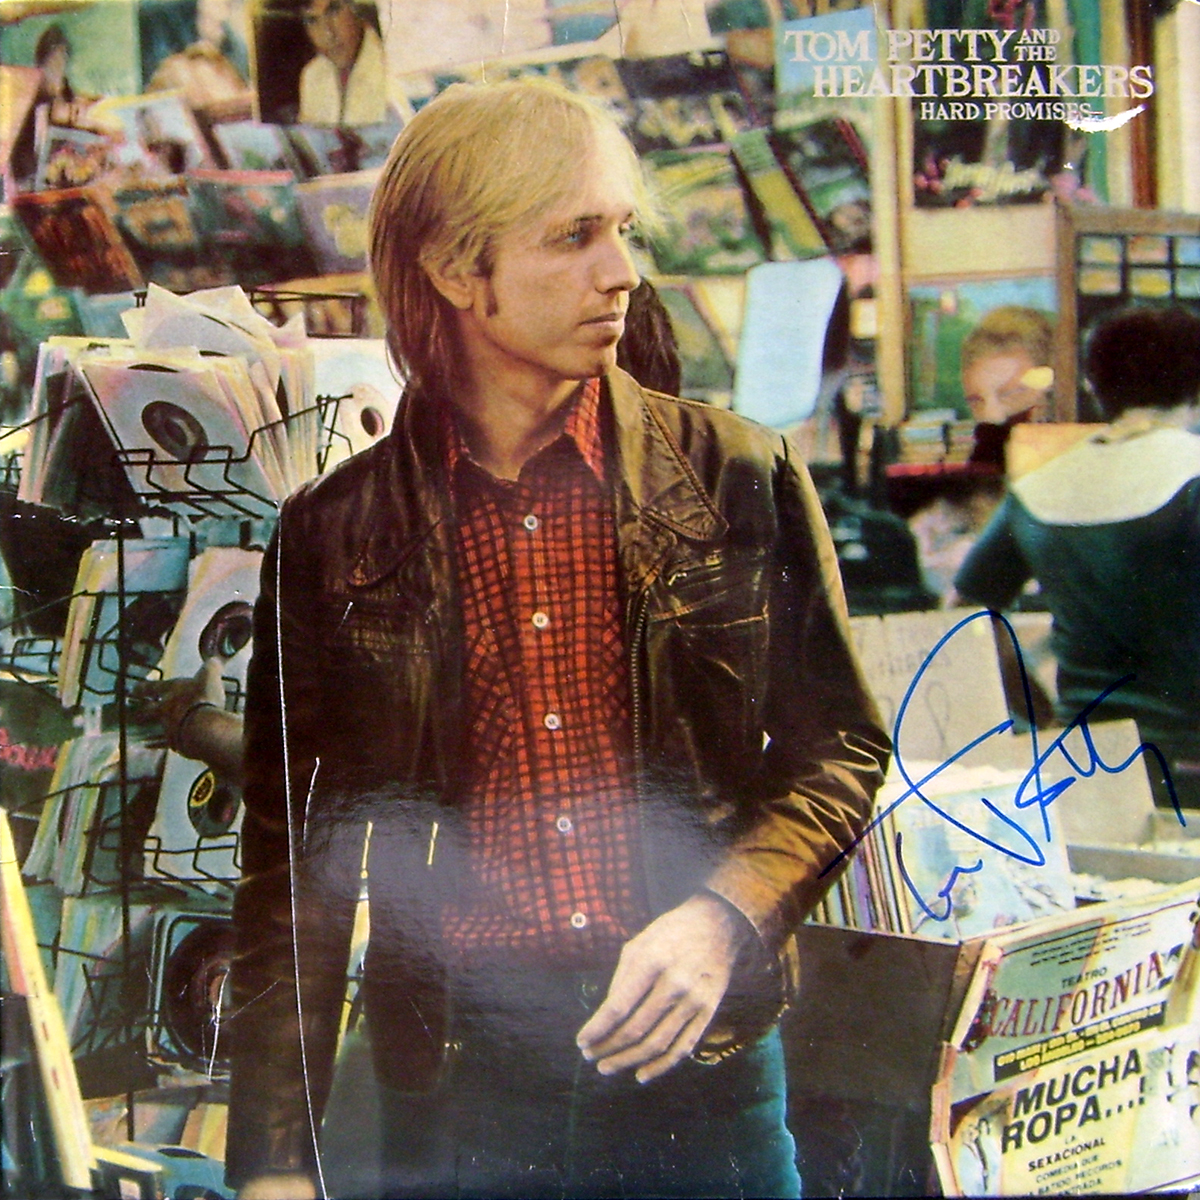 Tom Petty LP - Hard Promises